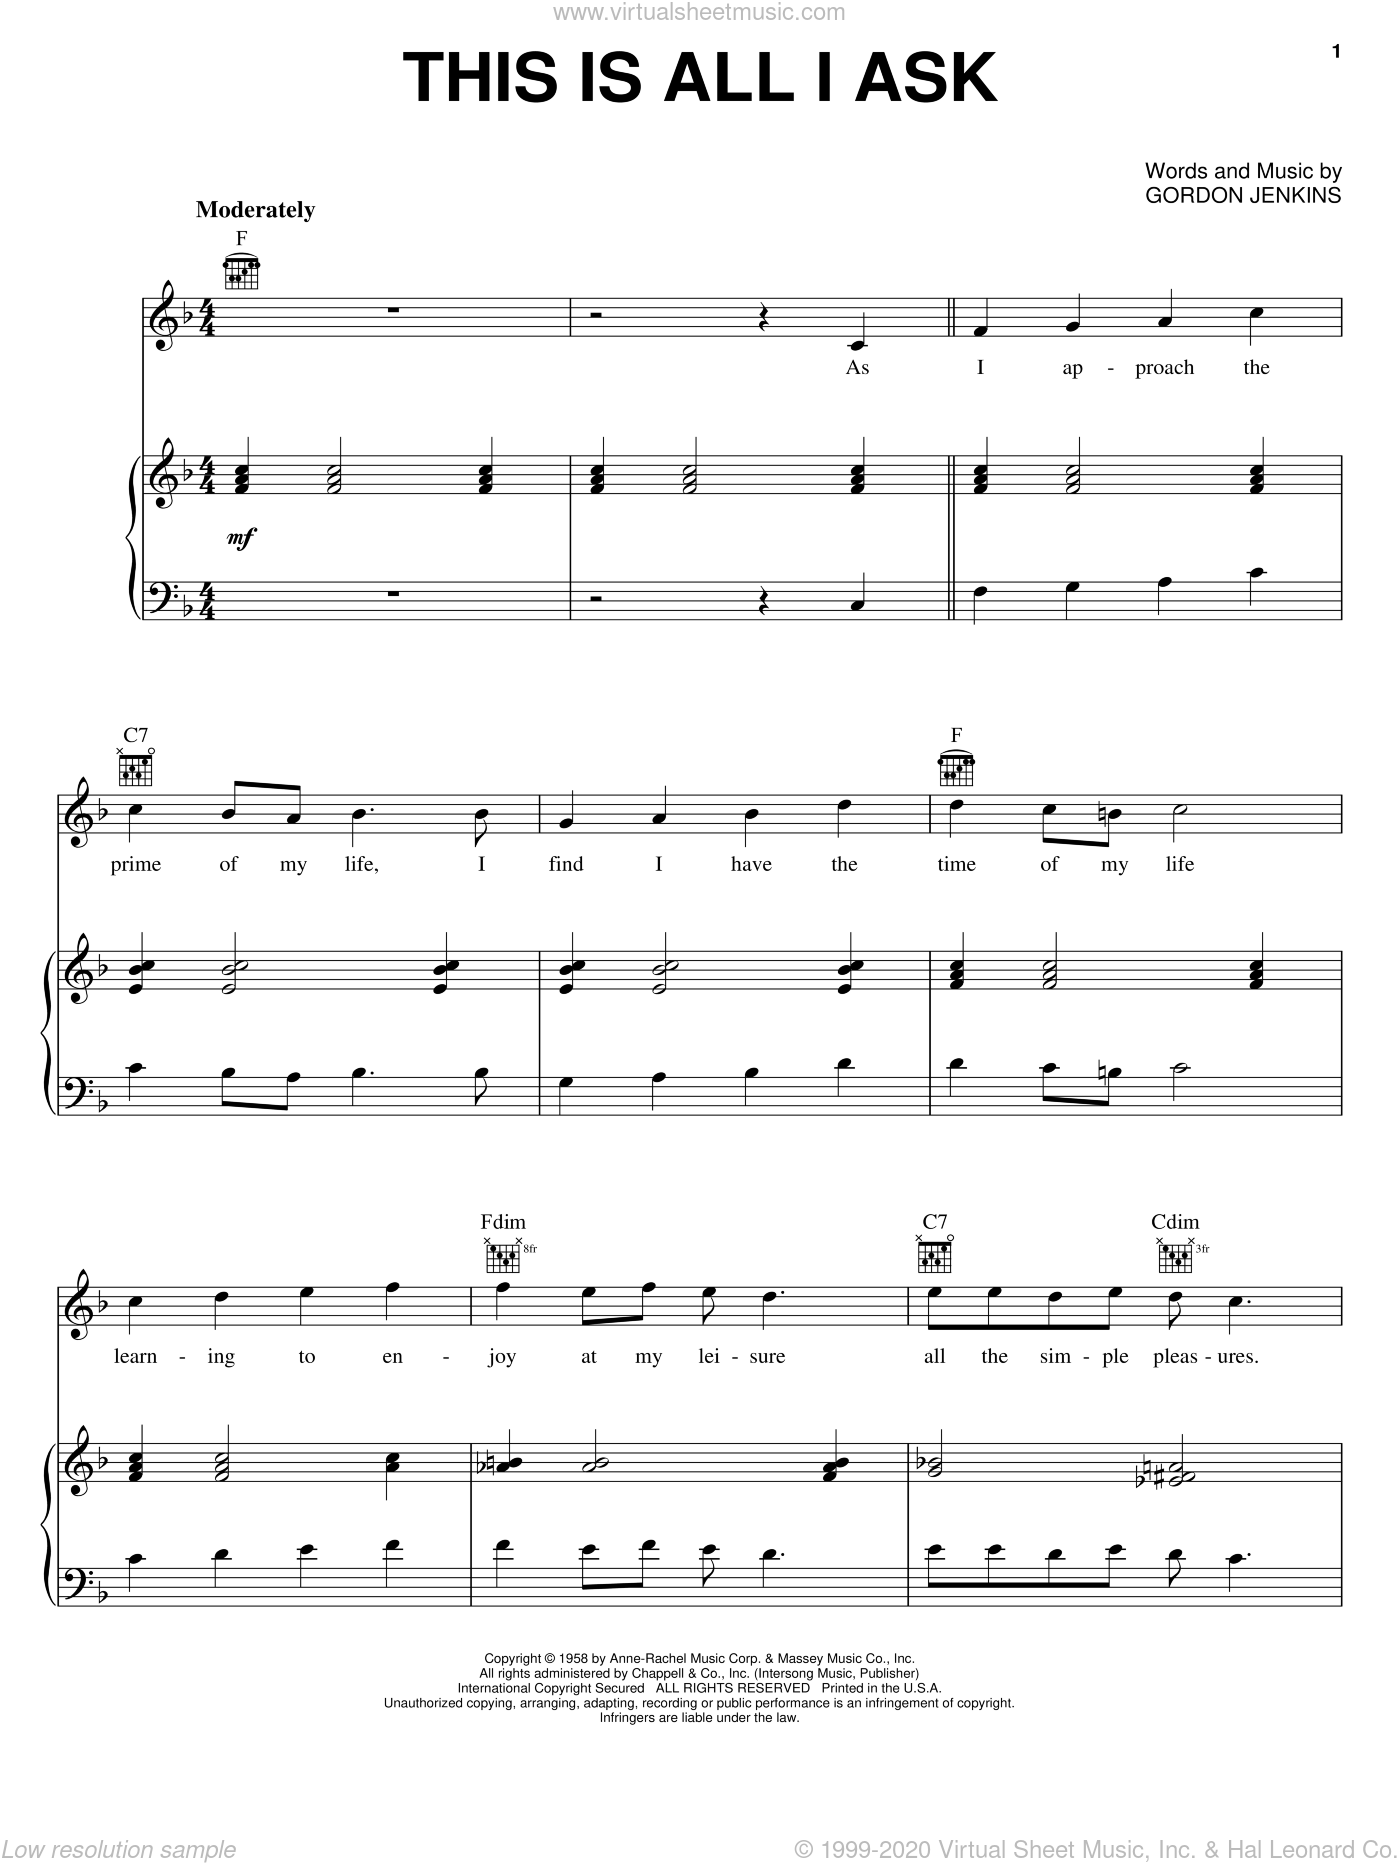 This Is All I Ask (Beautiful Girls Walk A Little Slower) sheet music for voice, piano or guitar by Gordon Jenkins, Robert Goulet and Tony Bennett, intermediate skill level